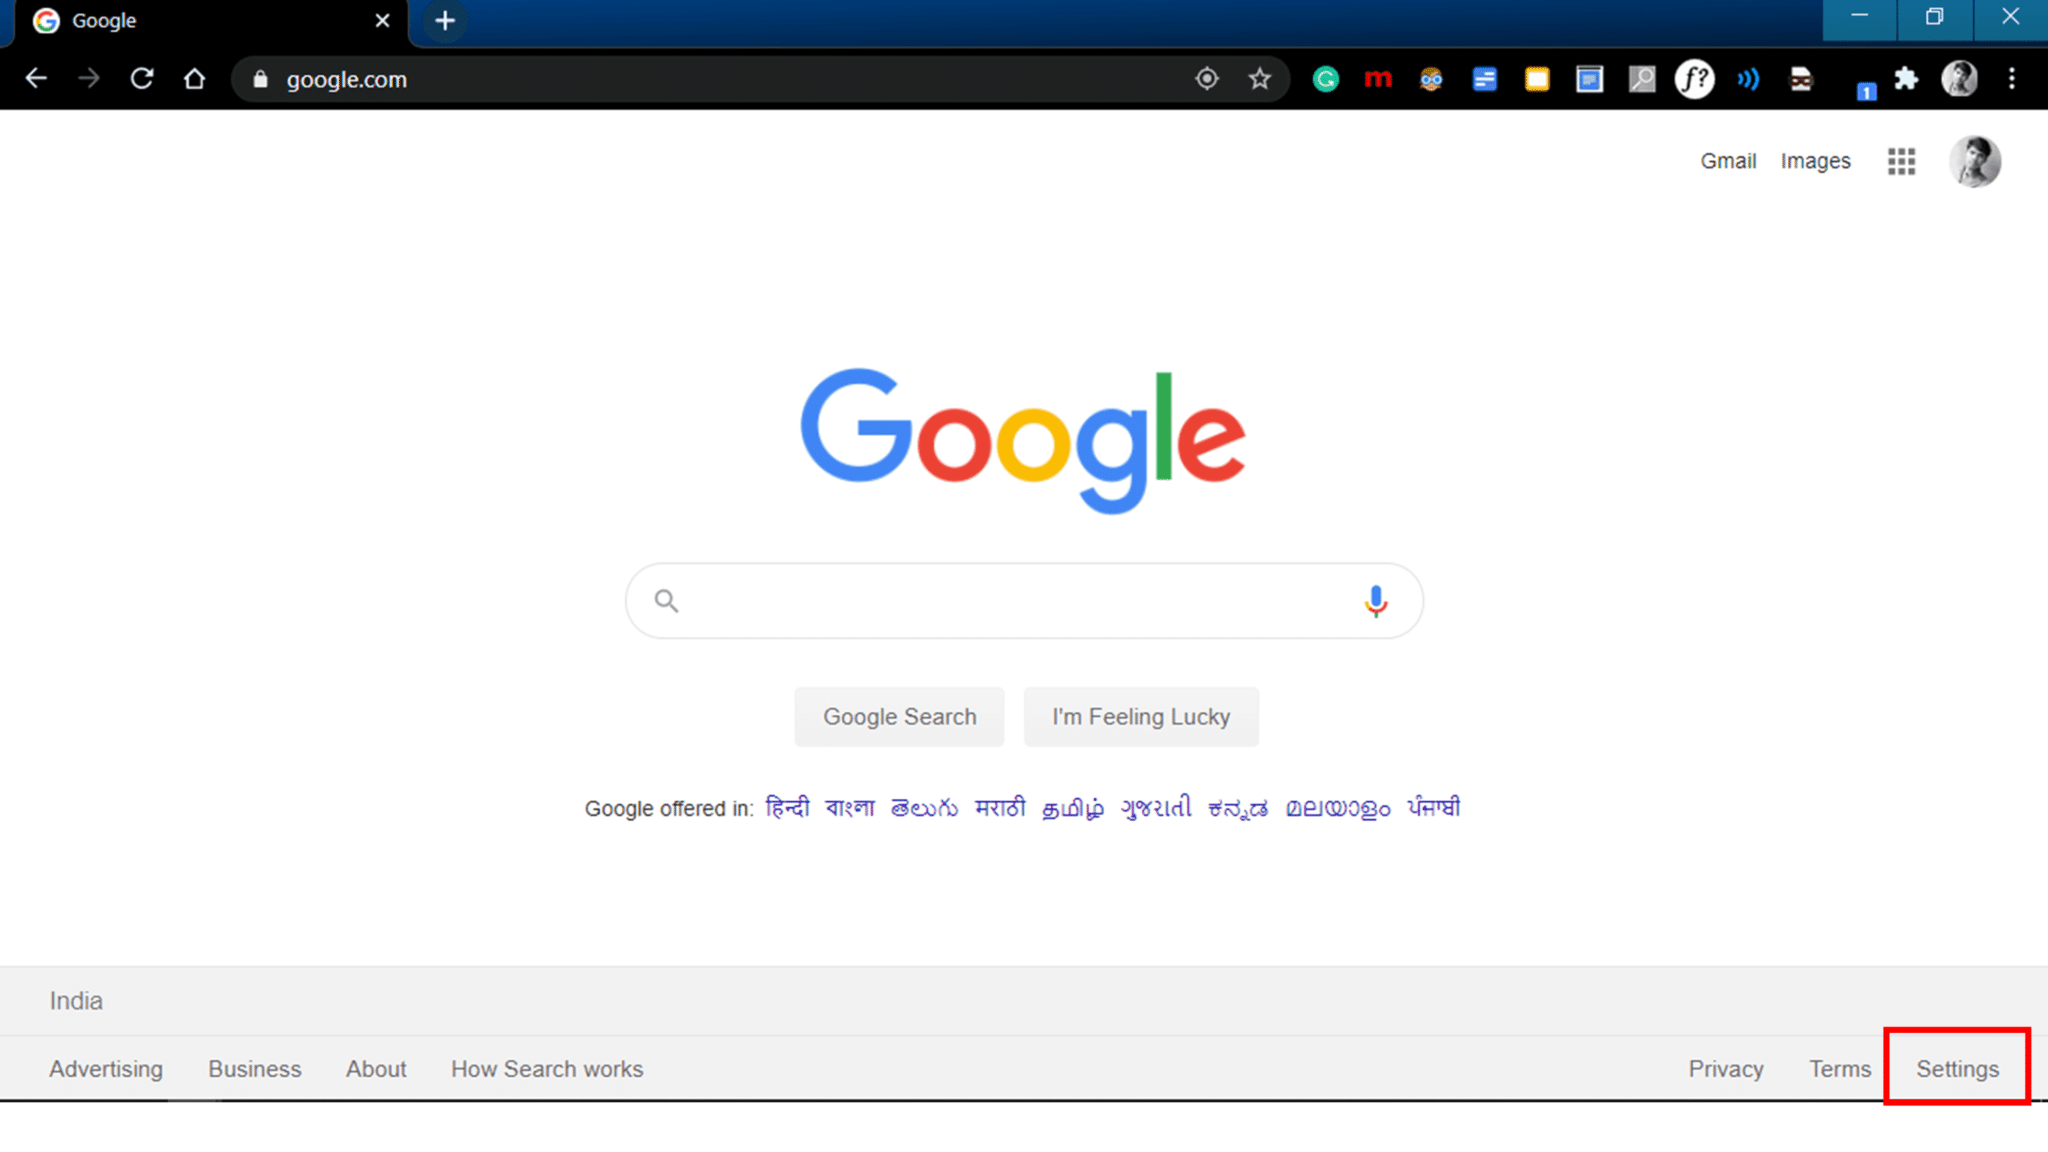 How to Turn Off SafeSearch on Google